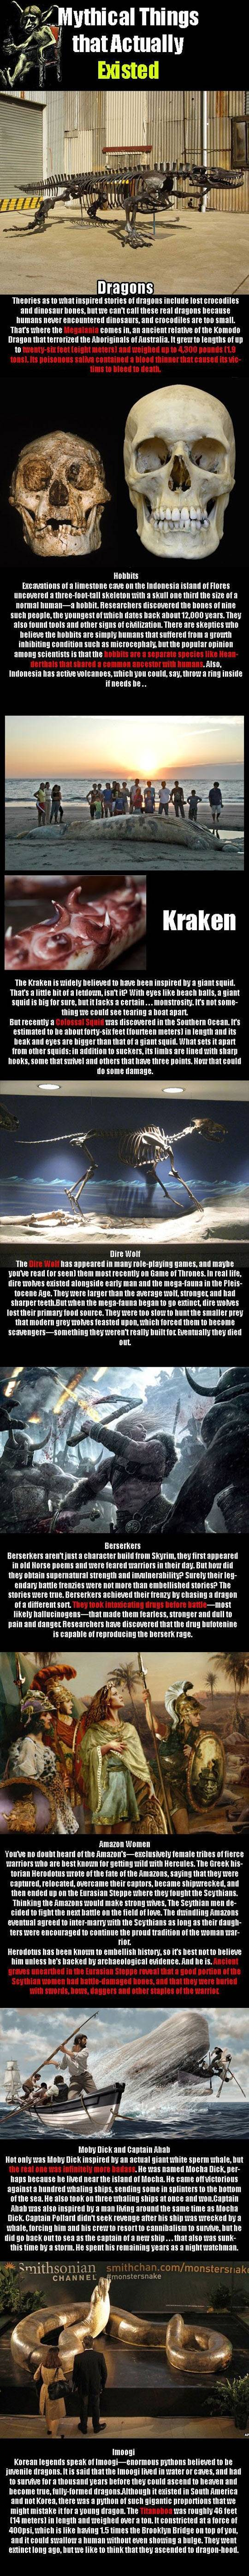 best-viral-pictures-mythical-creatures